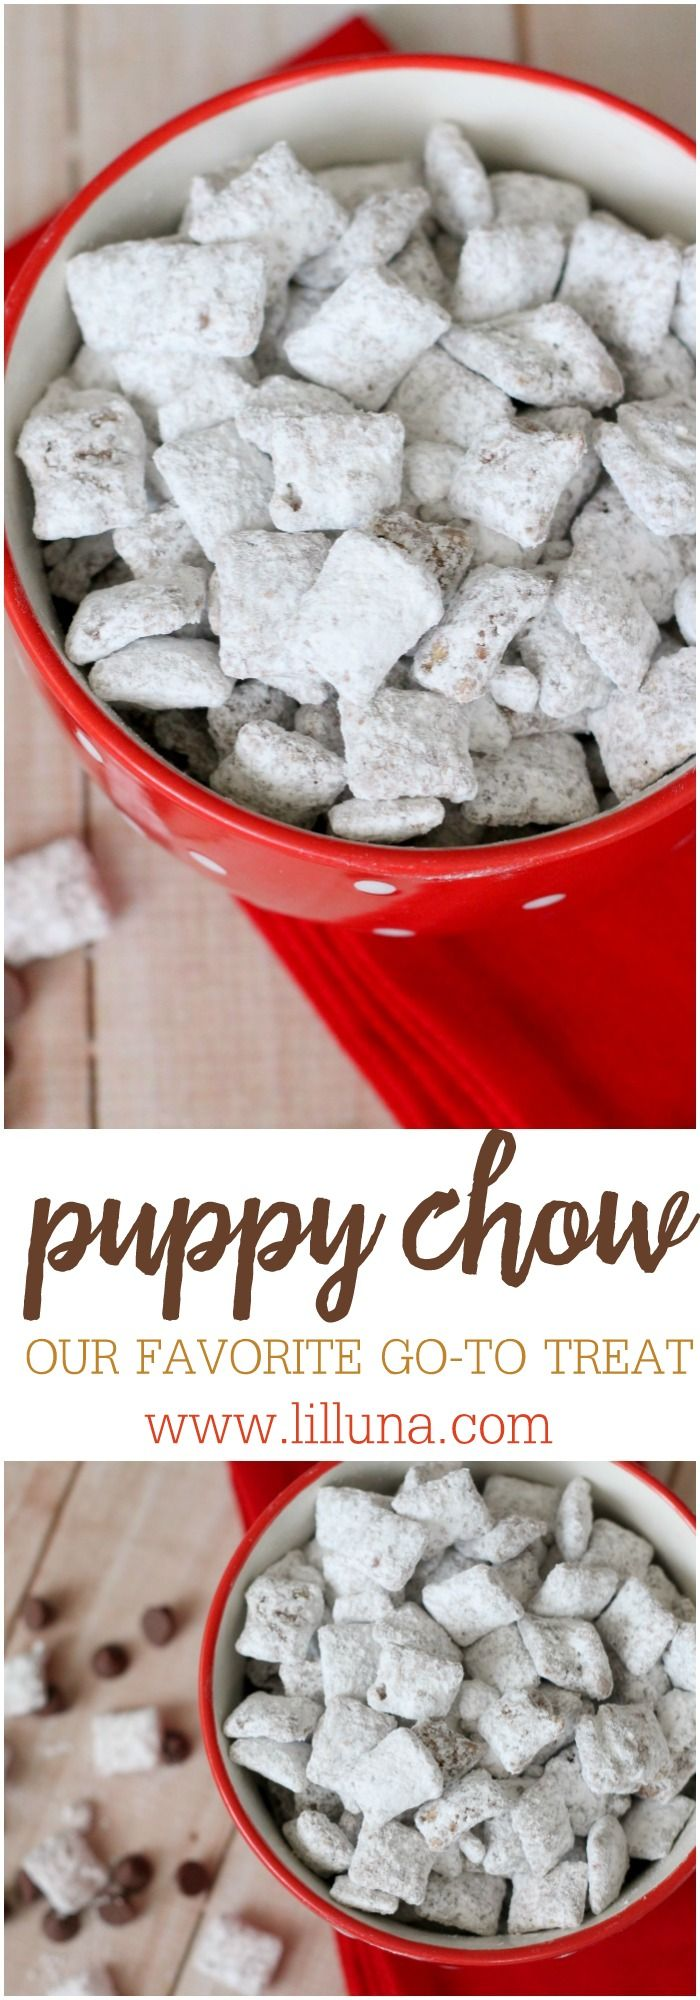 Puppy Chow - the delicious treat made from Chex covered in chocolate. peanut butter and powdered sugar!